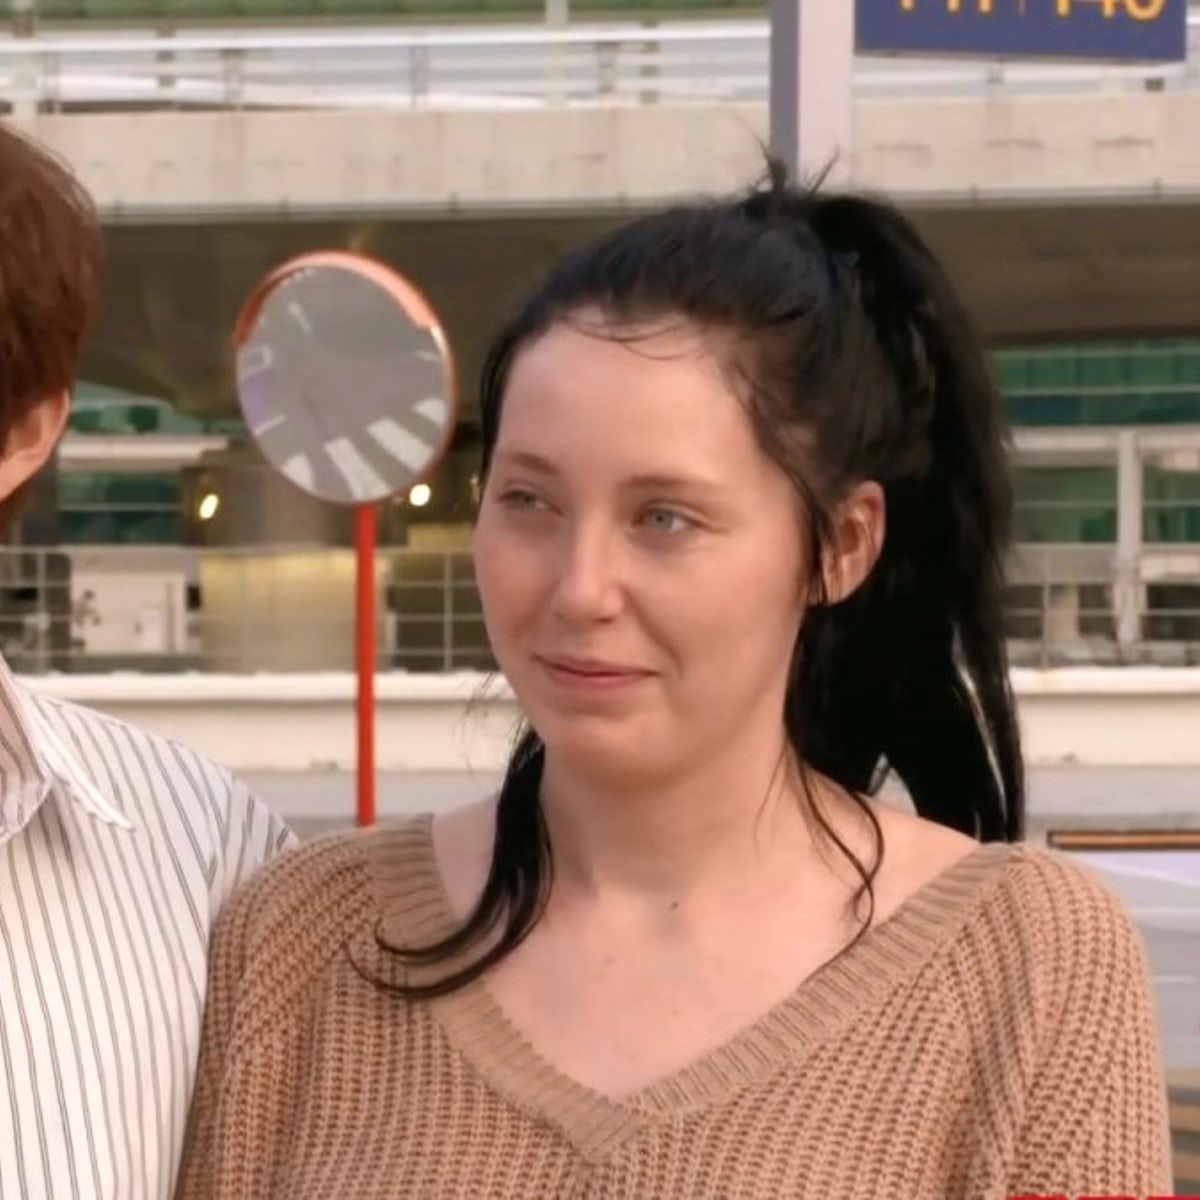 90 Day Fiance: So are Deavan and Jihoon still together, or did Deavan dump Jihoon and to return to the United States?